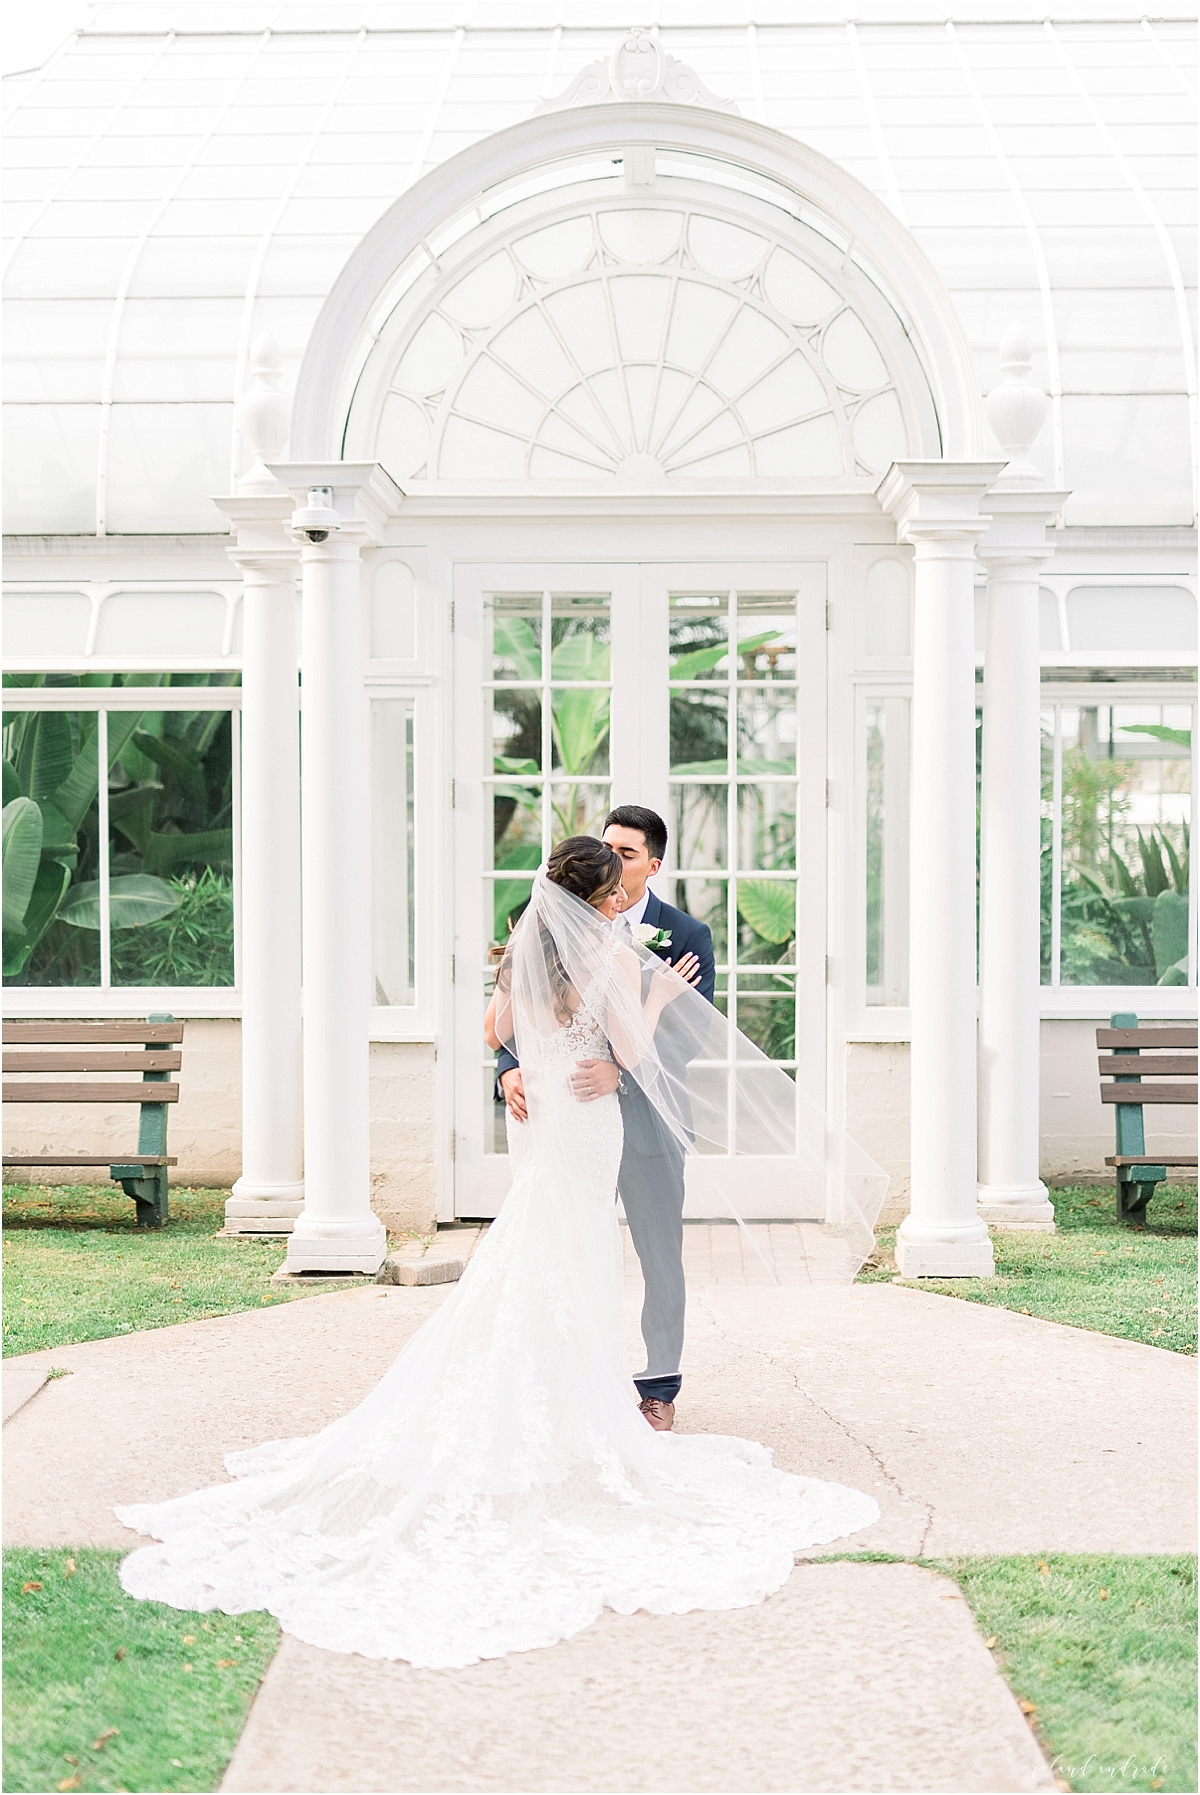 Tuscany Falls Wedding + Light and Airy Wedding Photographer Chicago, Mokena Wedding Photographer + Chicago Latino Photography + Naperville Wedding Photographer + Chicago Engagement Photographer + Best Photographer In Chicago_0048.jpg